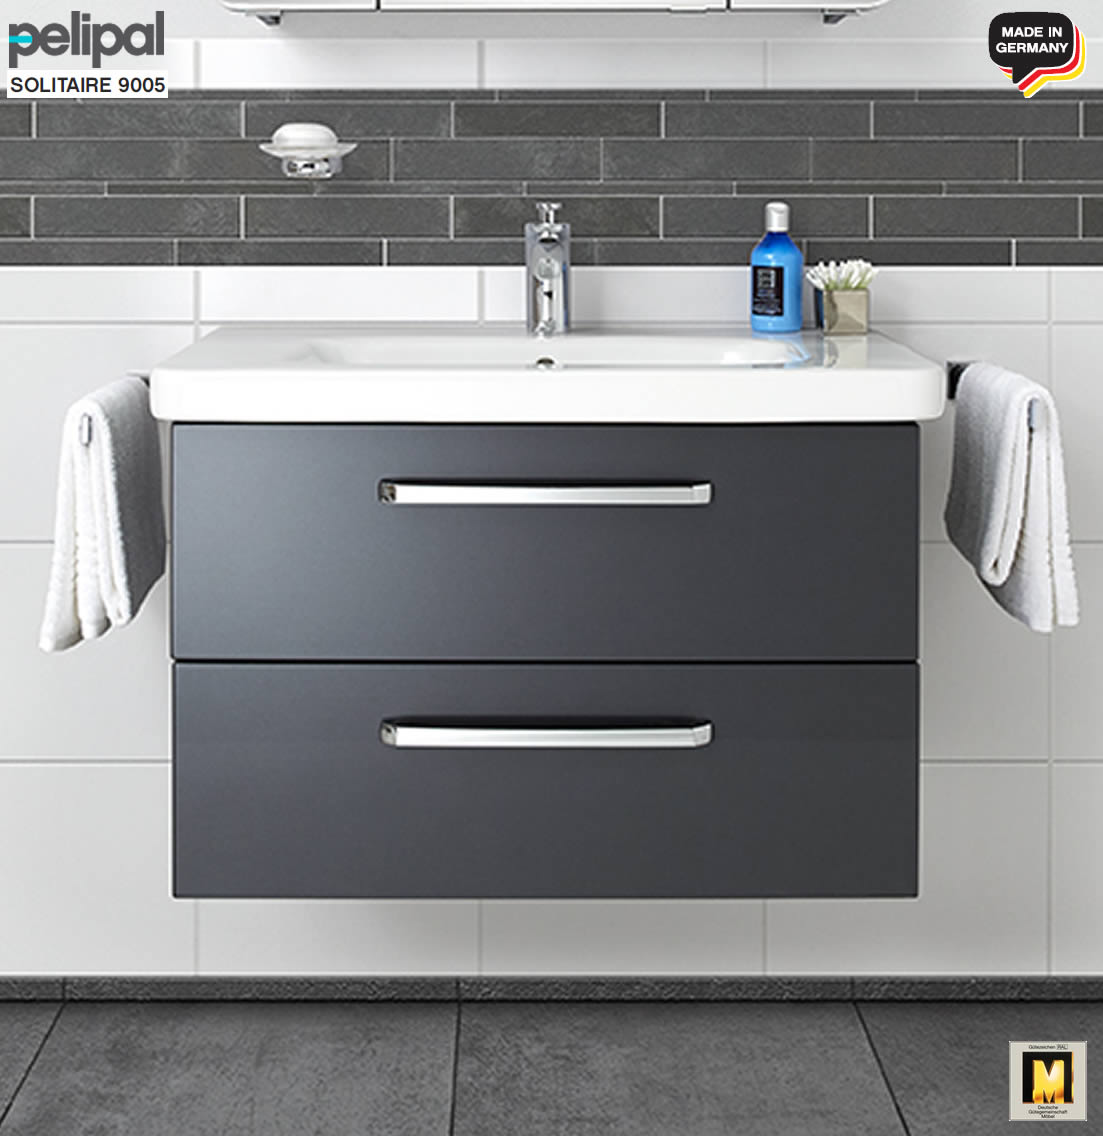 pelipal solitaire 9005 waschtisch set 80 cm mit duravit. Black Bedroom Furniture Sets. Home Design Ideas